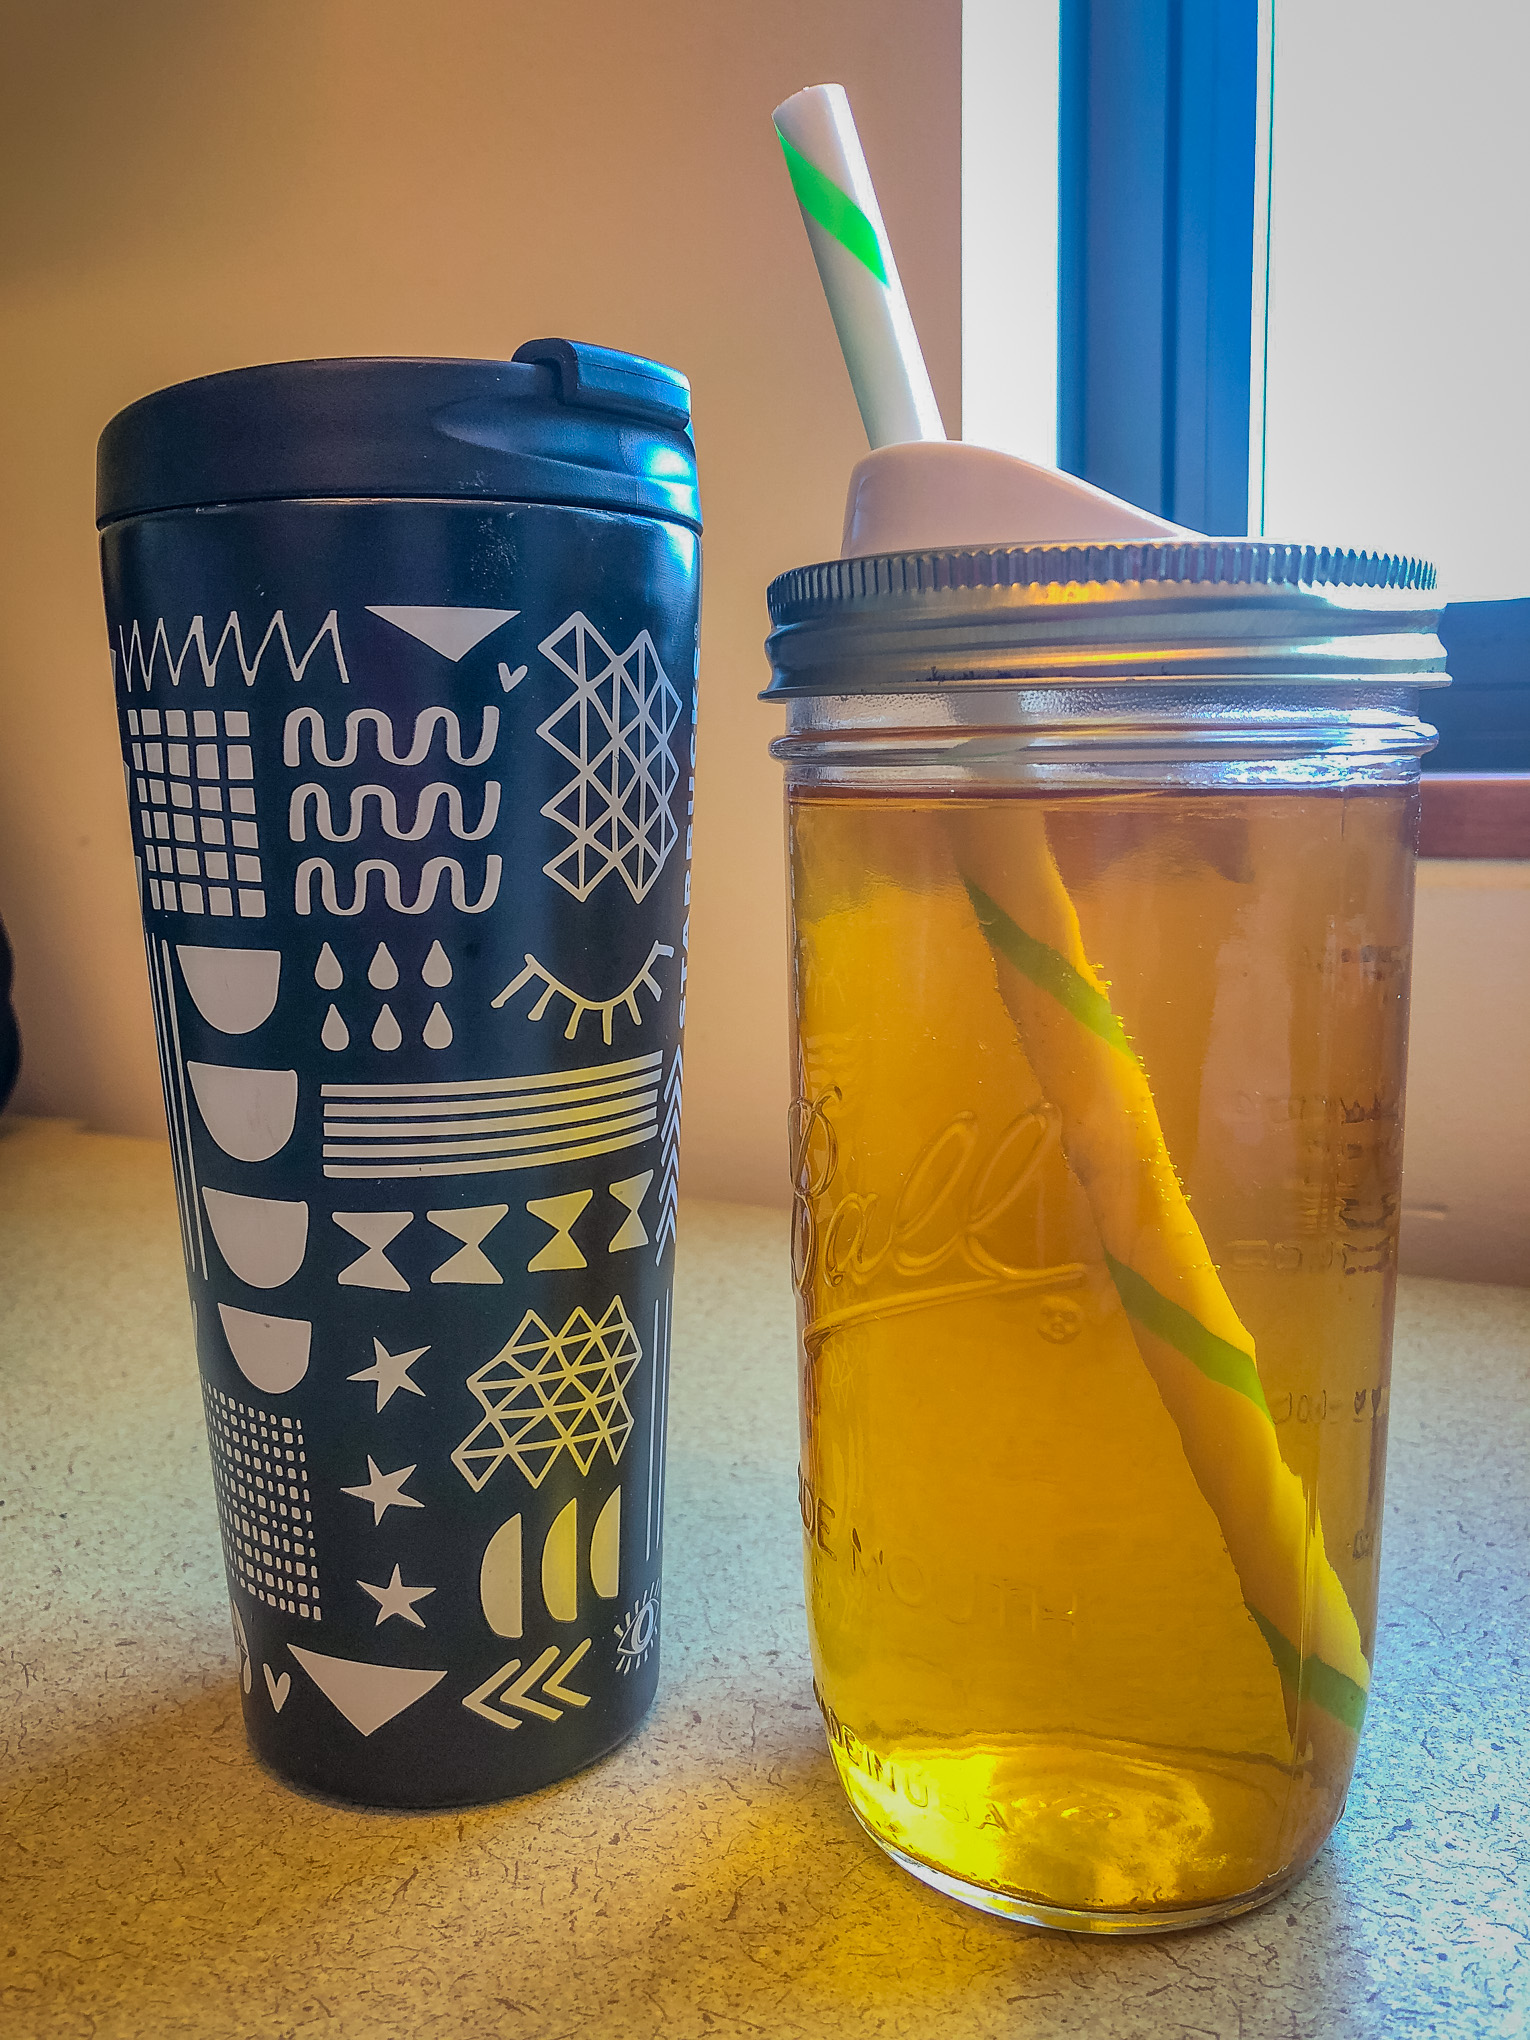 Travel mug and canning jar full of hot tea and iced tea